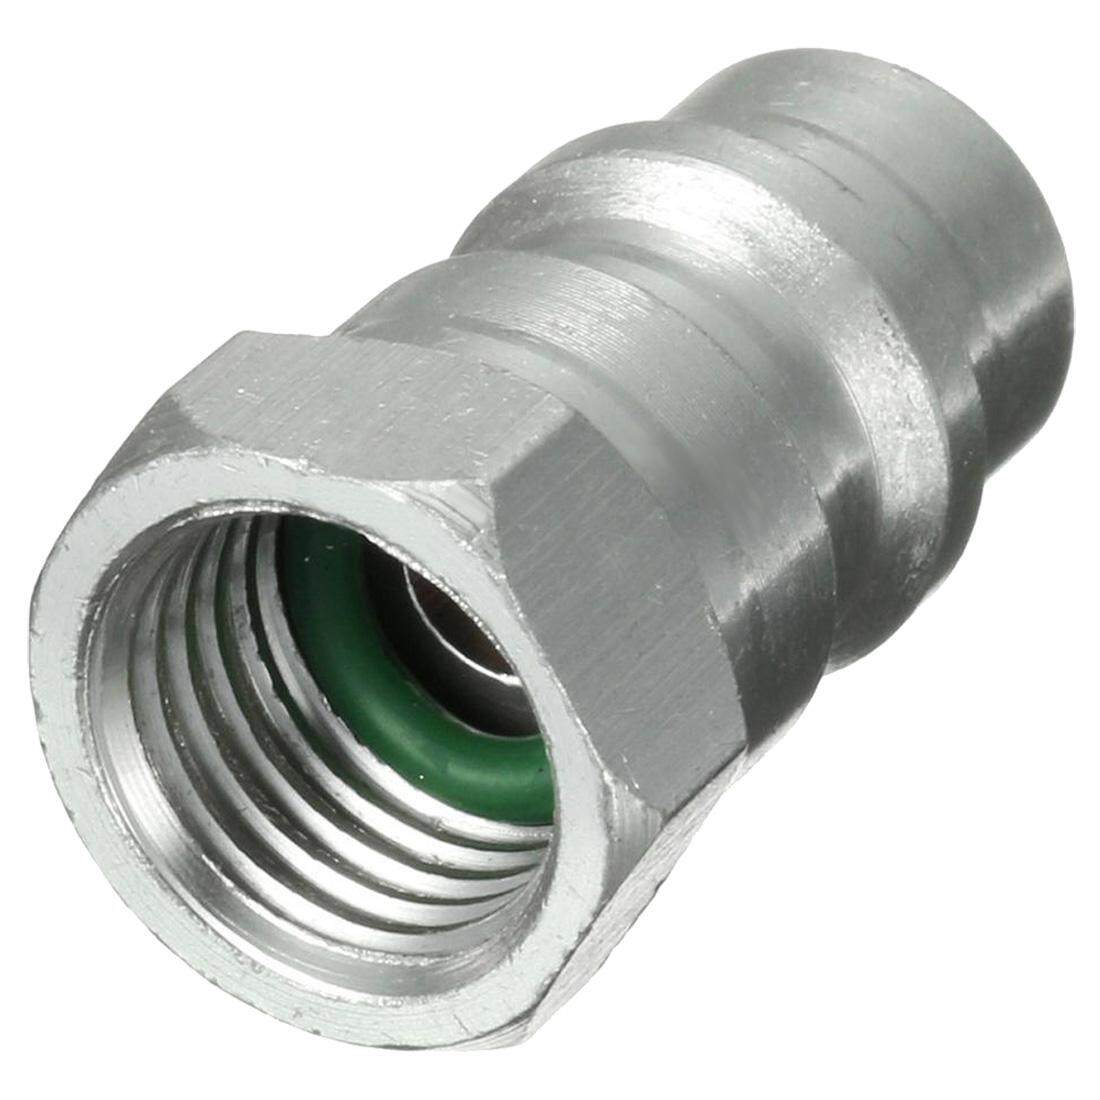 R12 R22 R502 to R134A Fast Quick Conversion Adapter Valve 1/4 to 8v1 Thread US